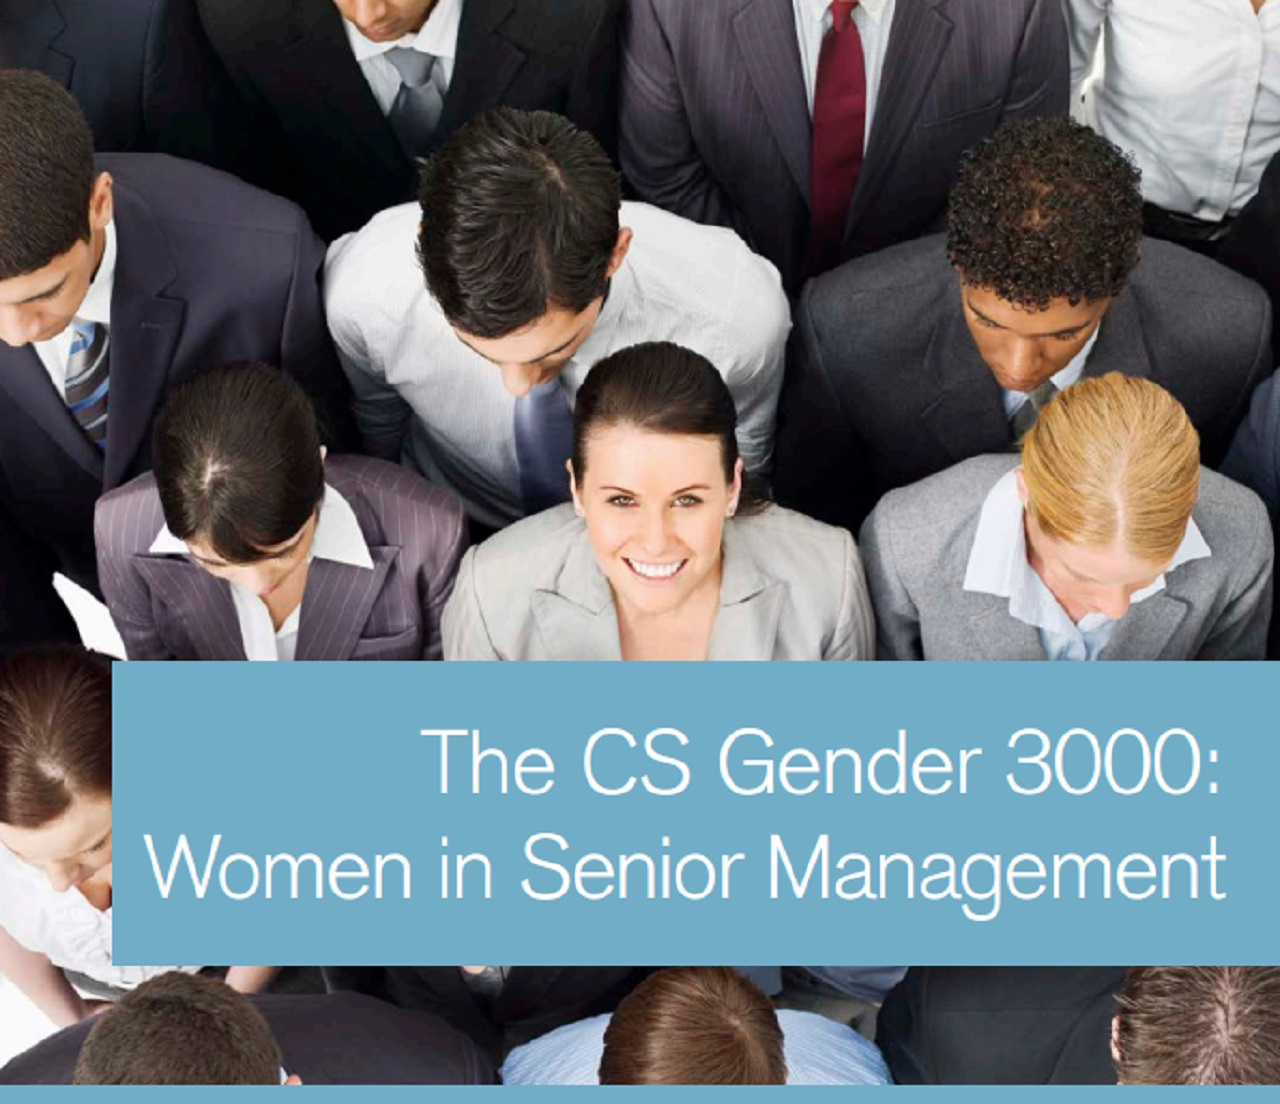 The_CS_3000_Women_in_Senior_Management_photo_credits_Credit_Suisse